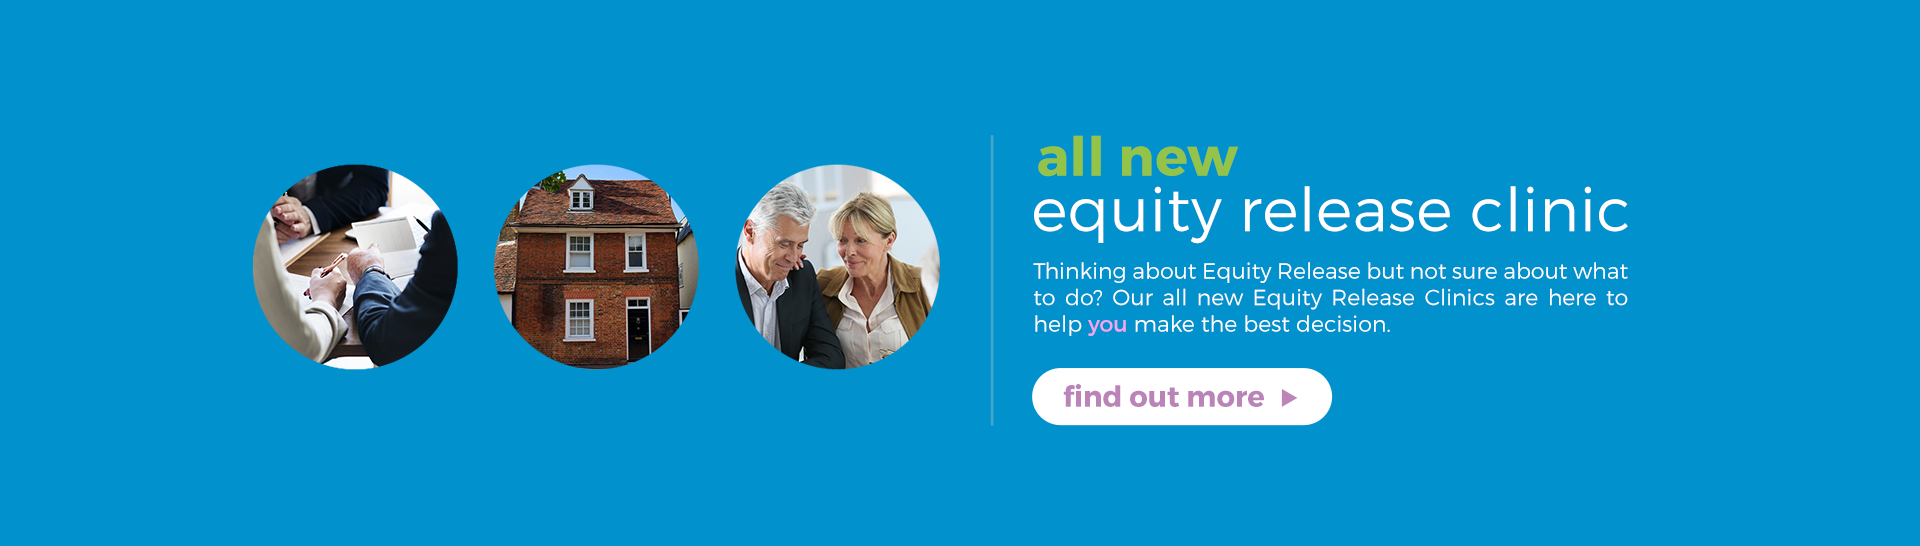 equity release clinic